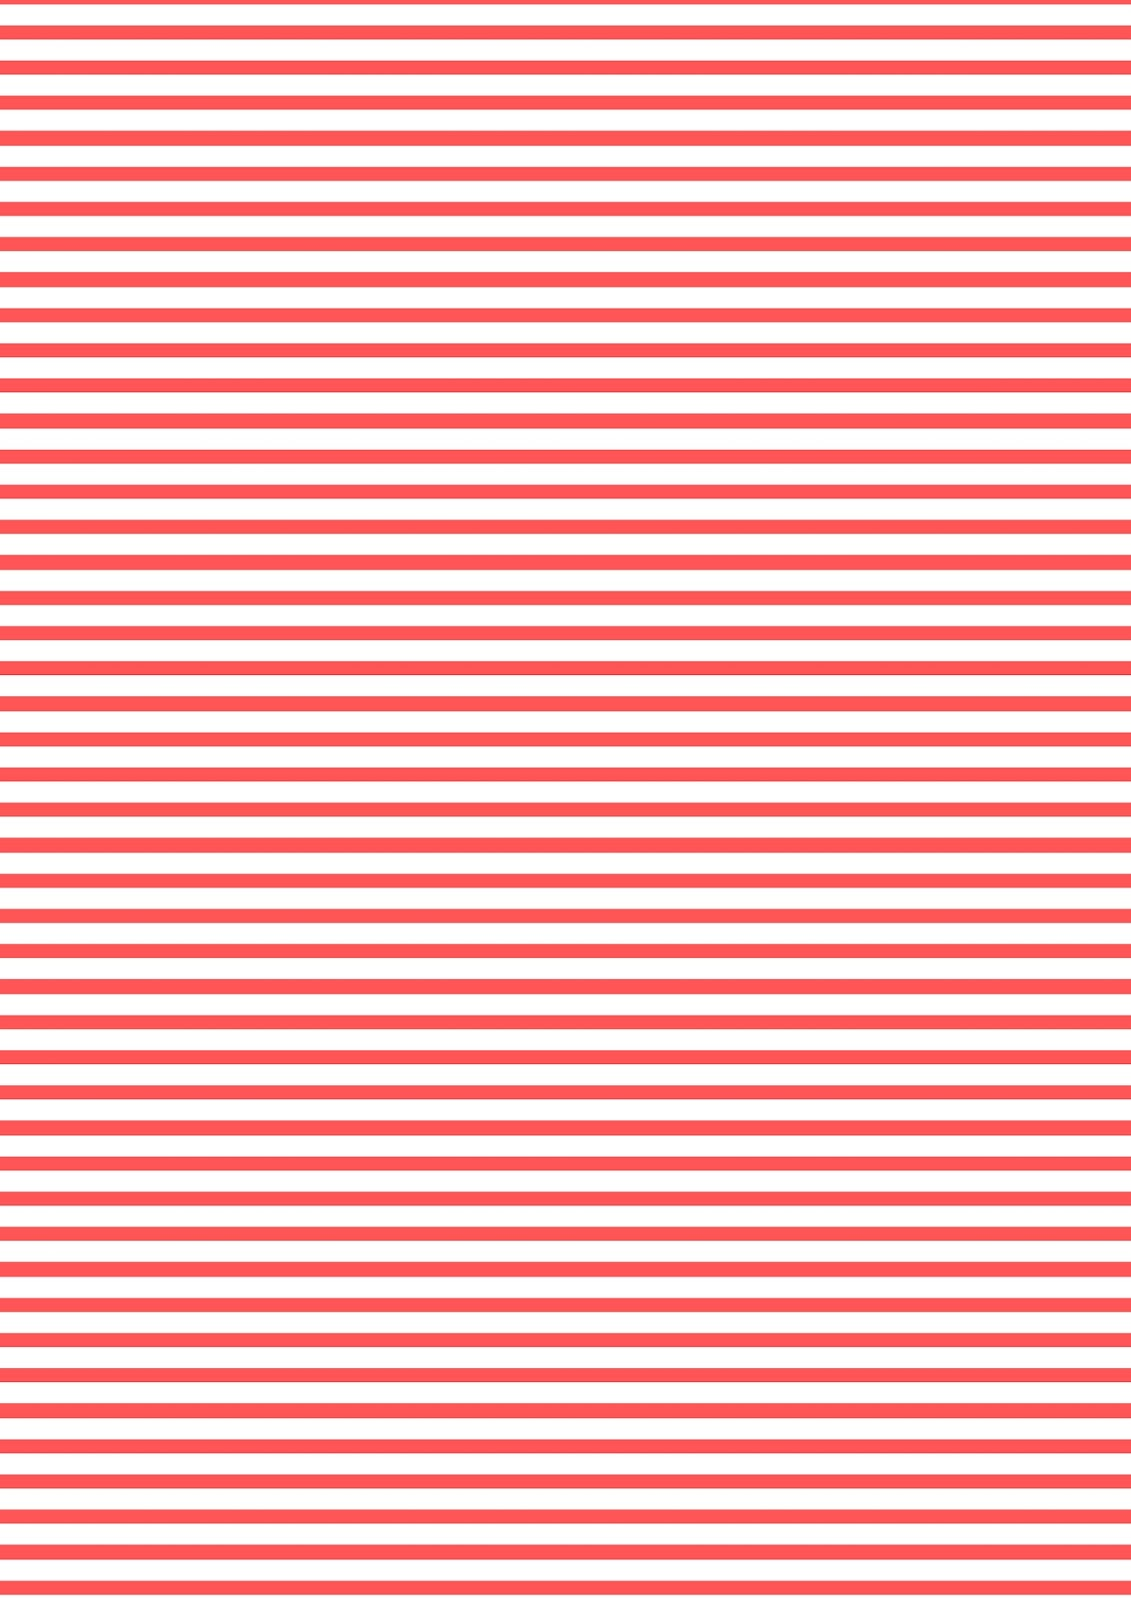 Free printable stars and stripes pattern papers ...